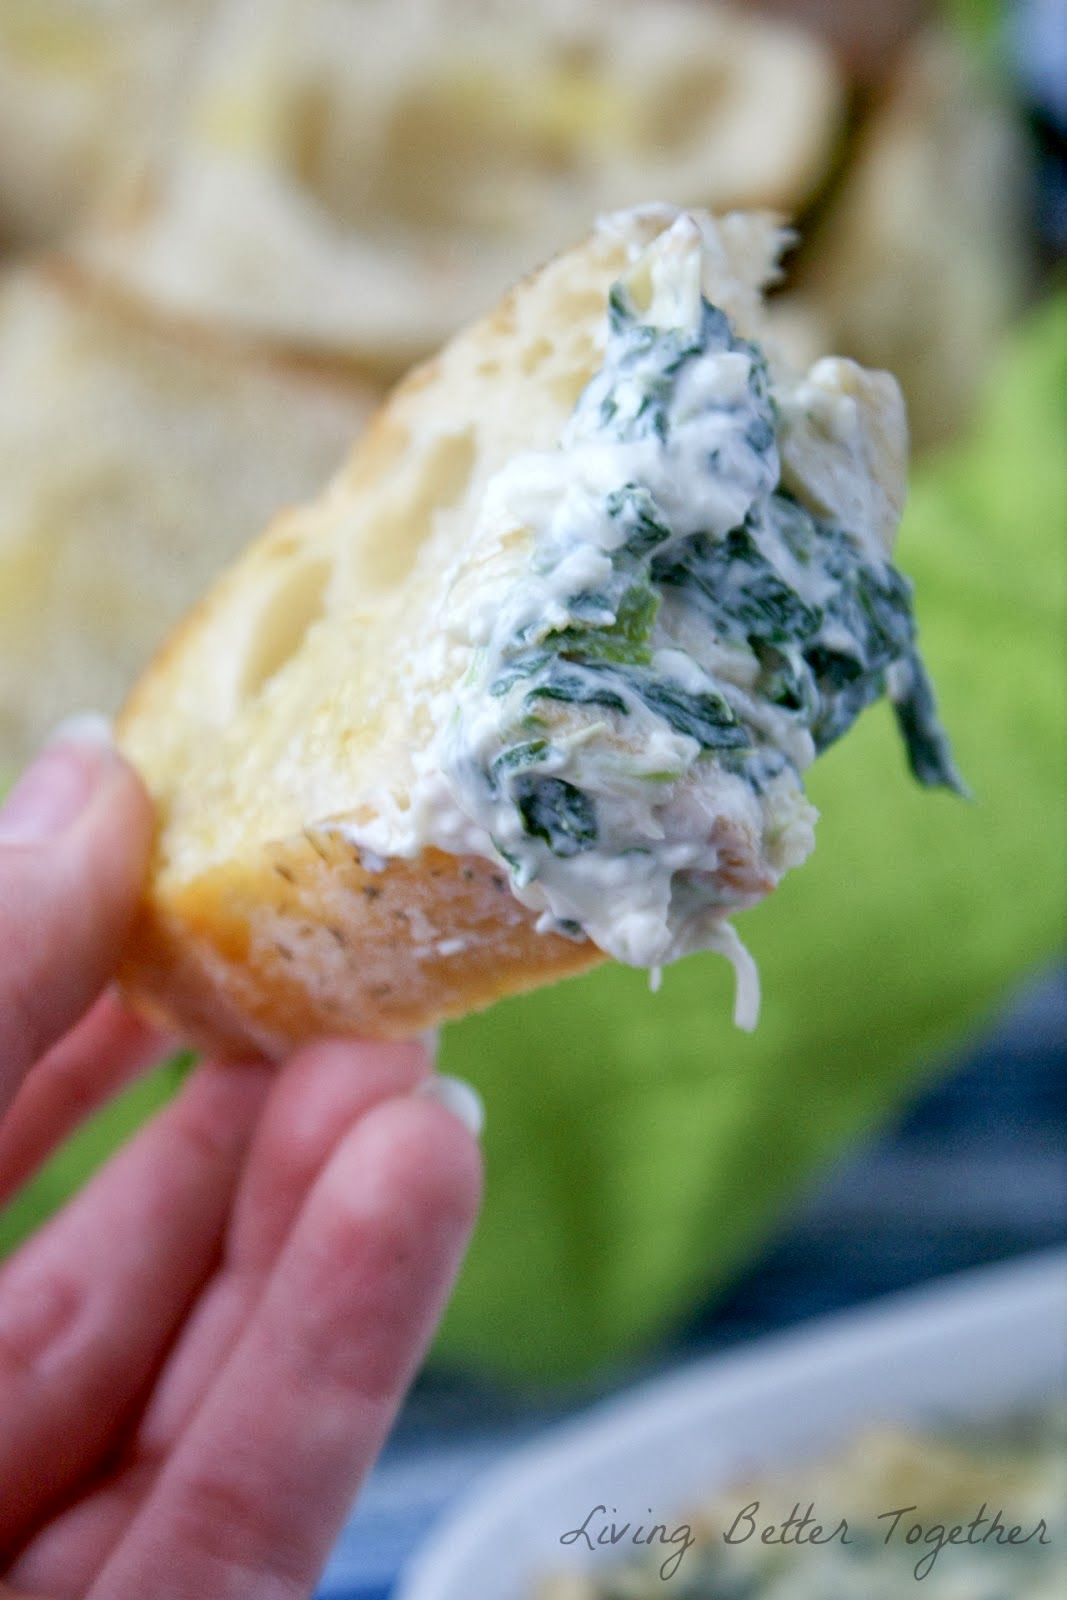 Baked Spinach & Artichoke Dip with Bread for www.anyonita-nibbles.com by Living Better Together